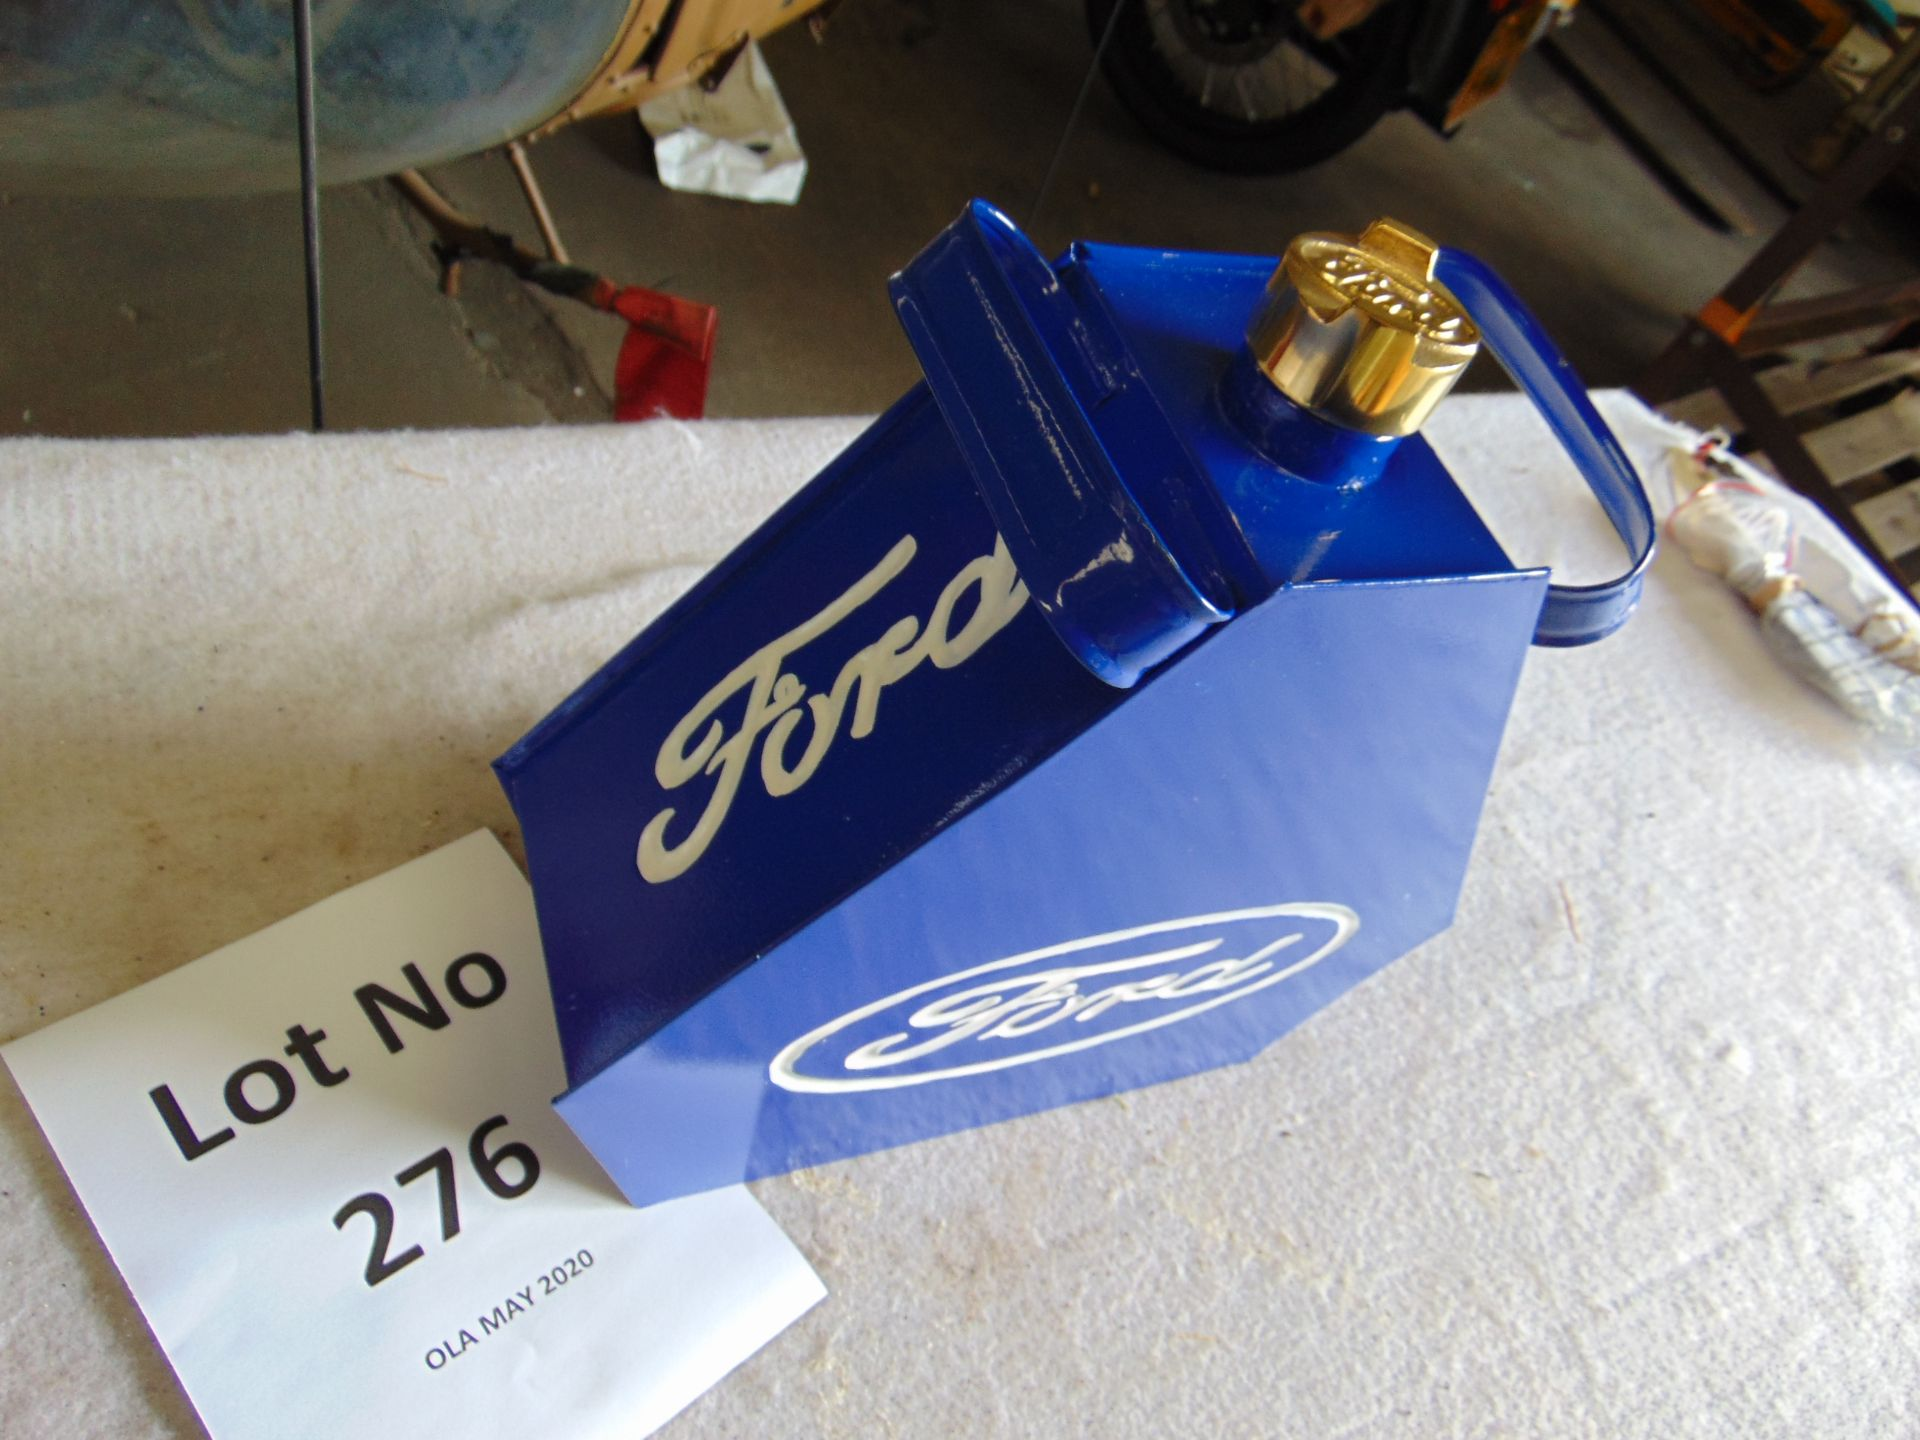 Lot 276 - Unused Ford Triangle 1 Gall Fuel/Oil Can with brass screw cap